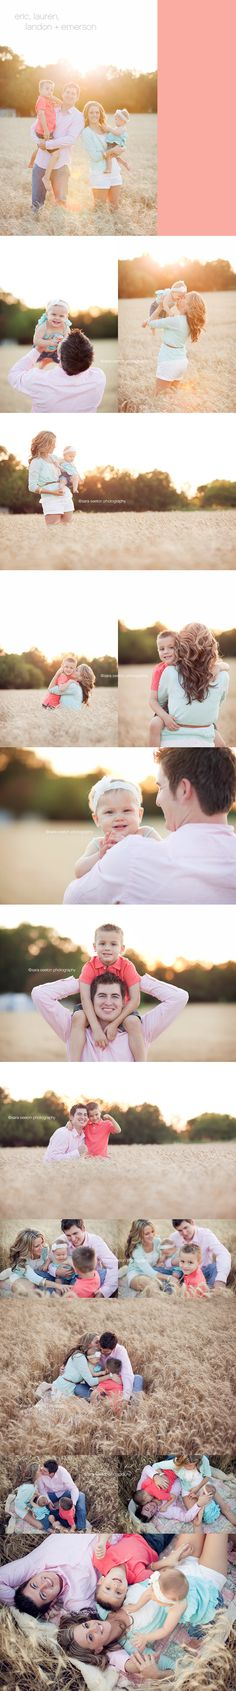 Would love to have a great family photo shoot like this with all my kids